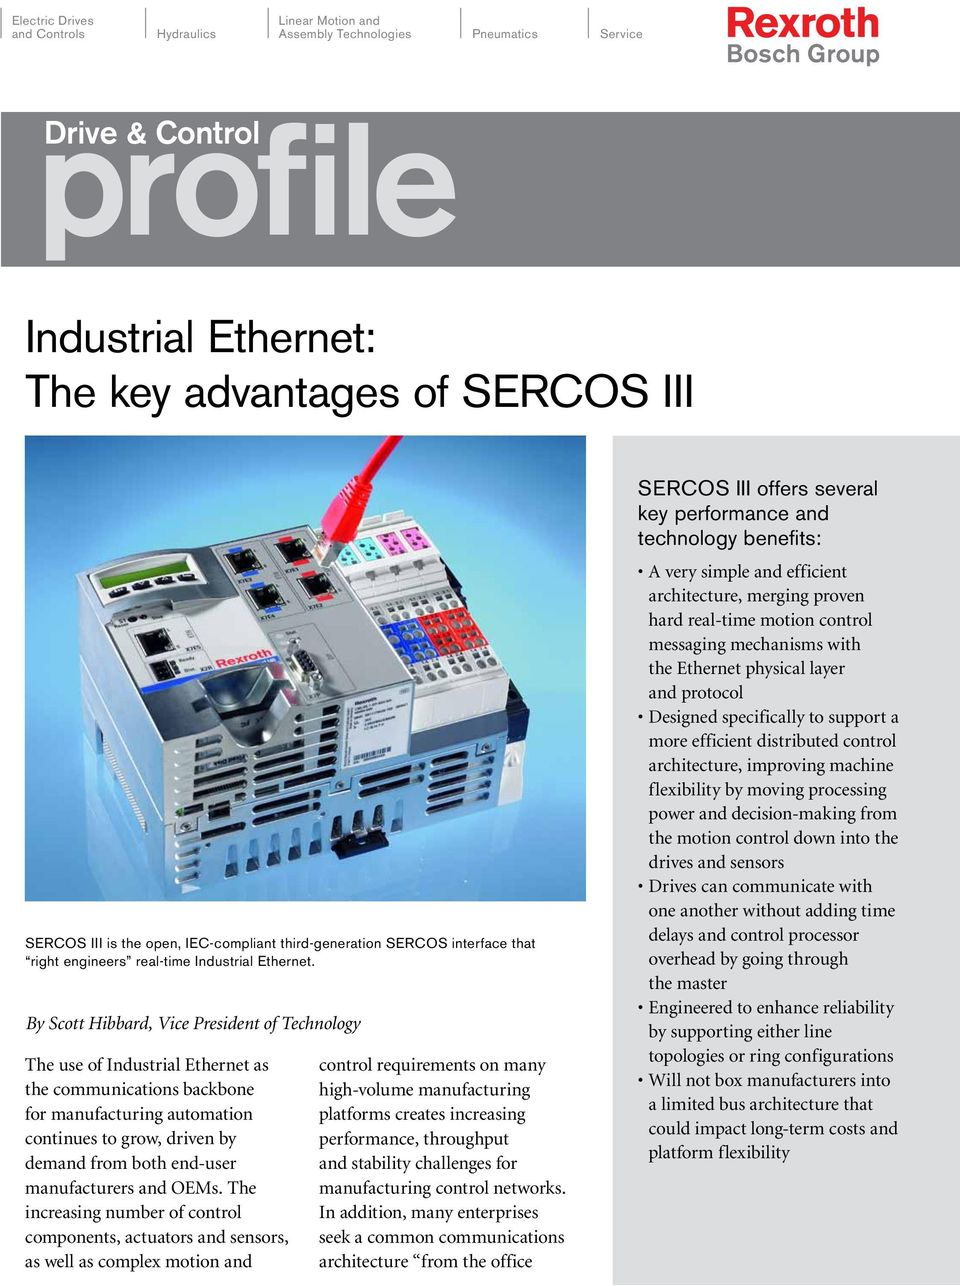 By Scott Hibbard, Vice President of Technology The use of Industrial Ethernet as the communications backbone for manufacturing automation continues to grow, driven by demand from both end-user